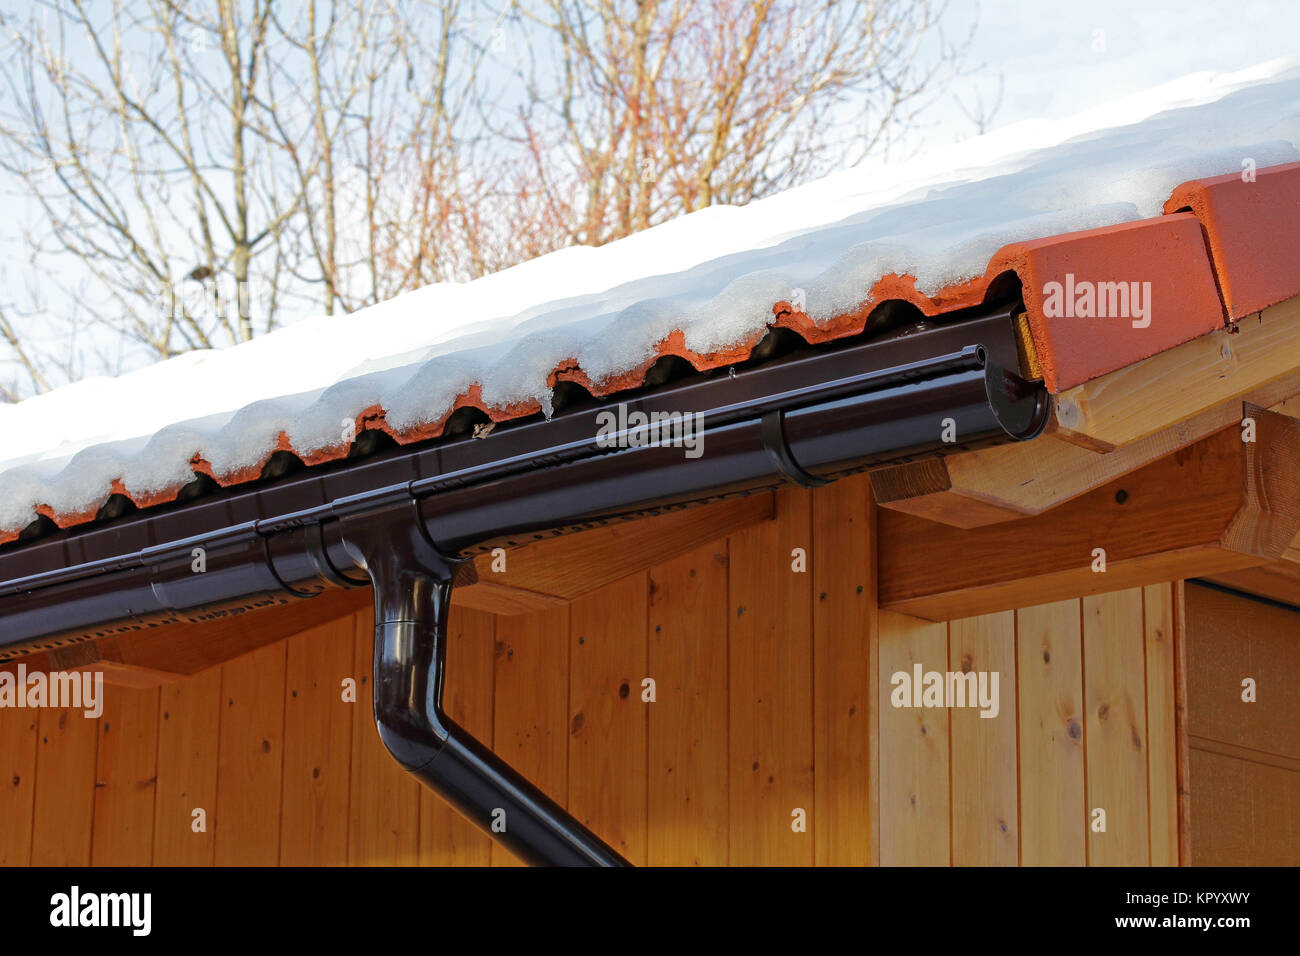 a wooden roof with rain gutter and drainpipe in winter - Stock Image